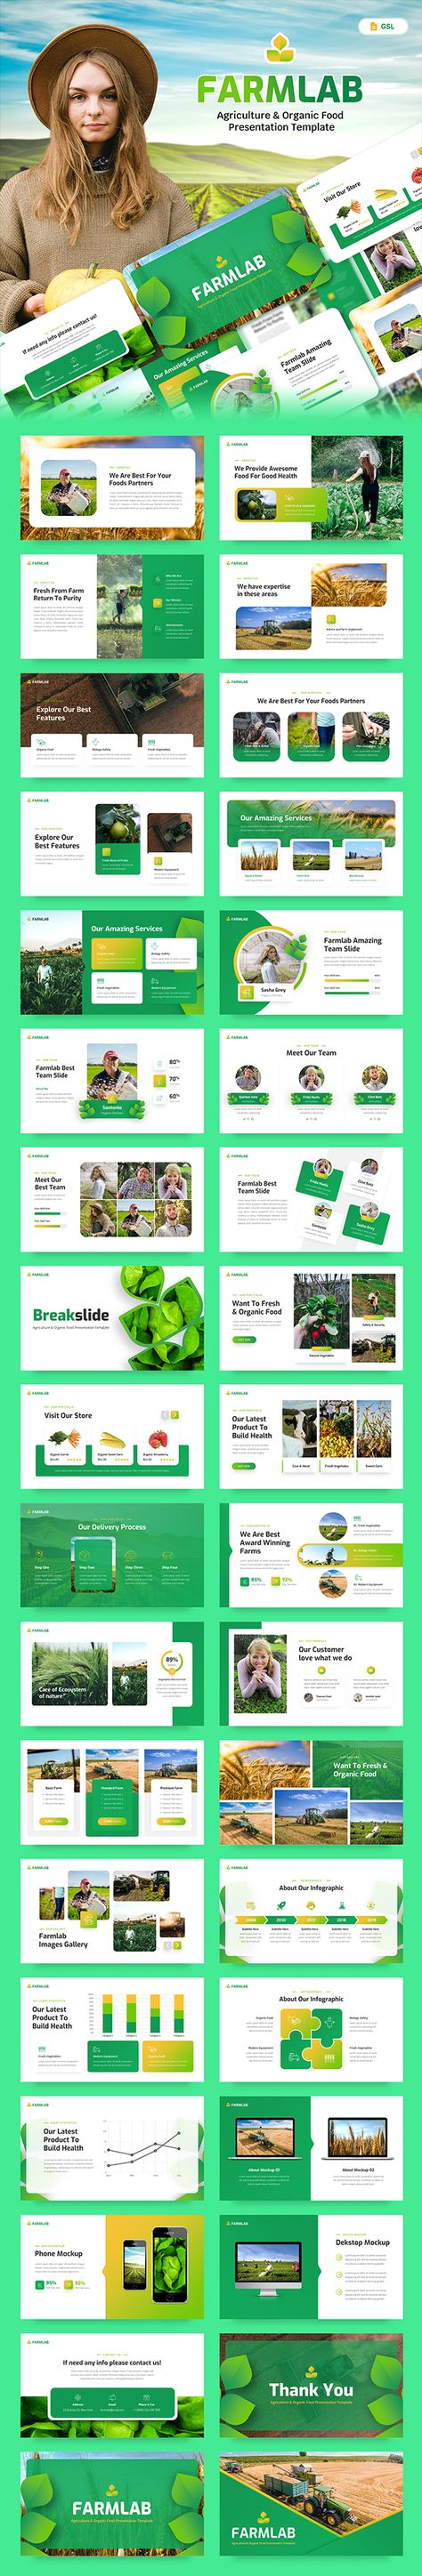 Farmlab - Agriculture & Organic Food Google Slides Presentation Template